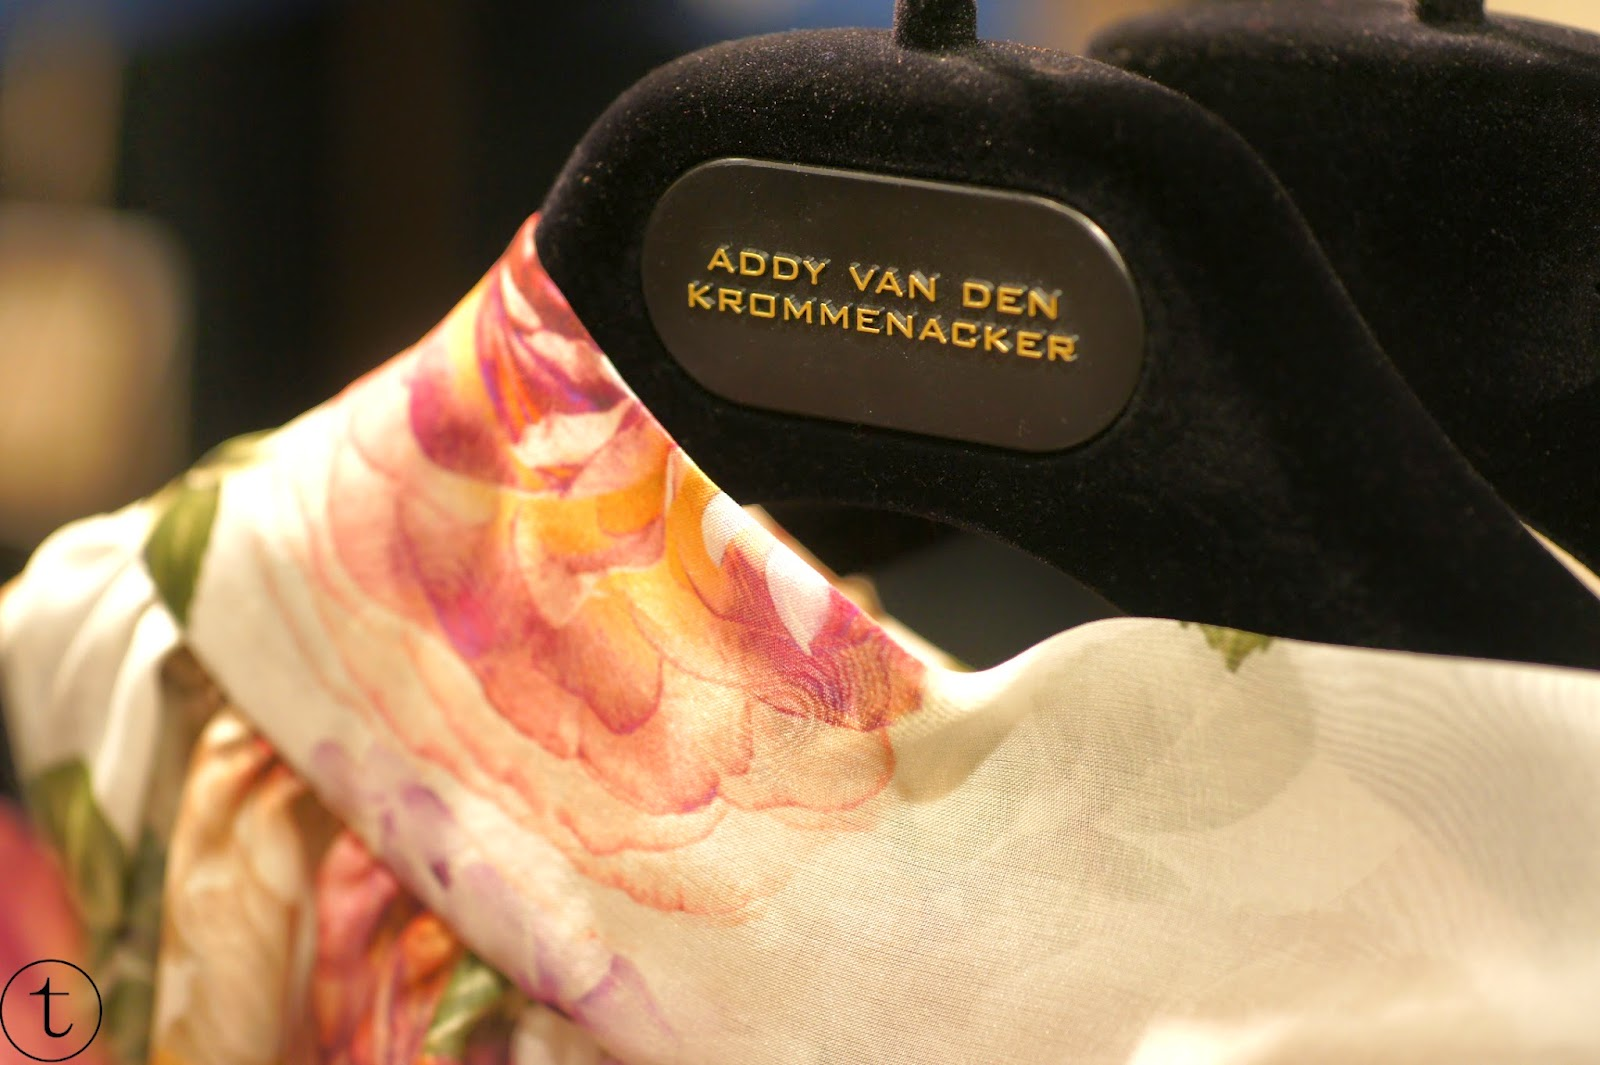 addy van den krommenacker floral collection